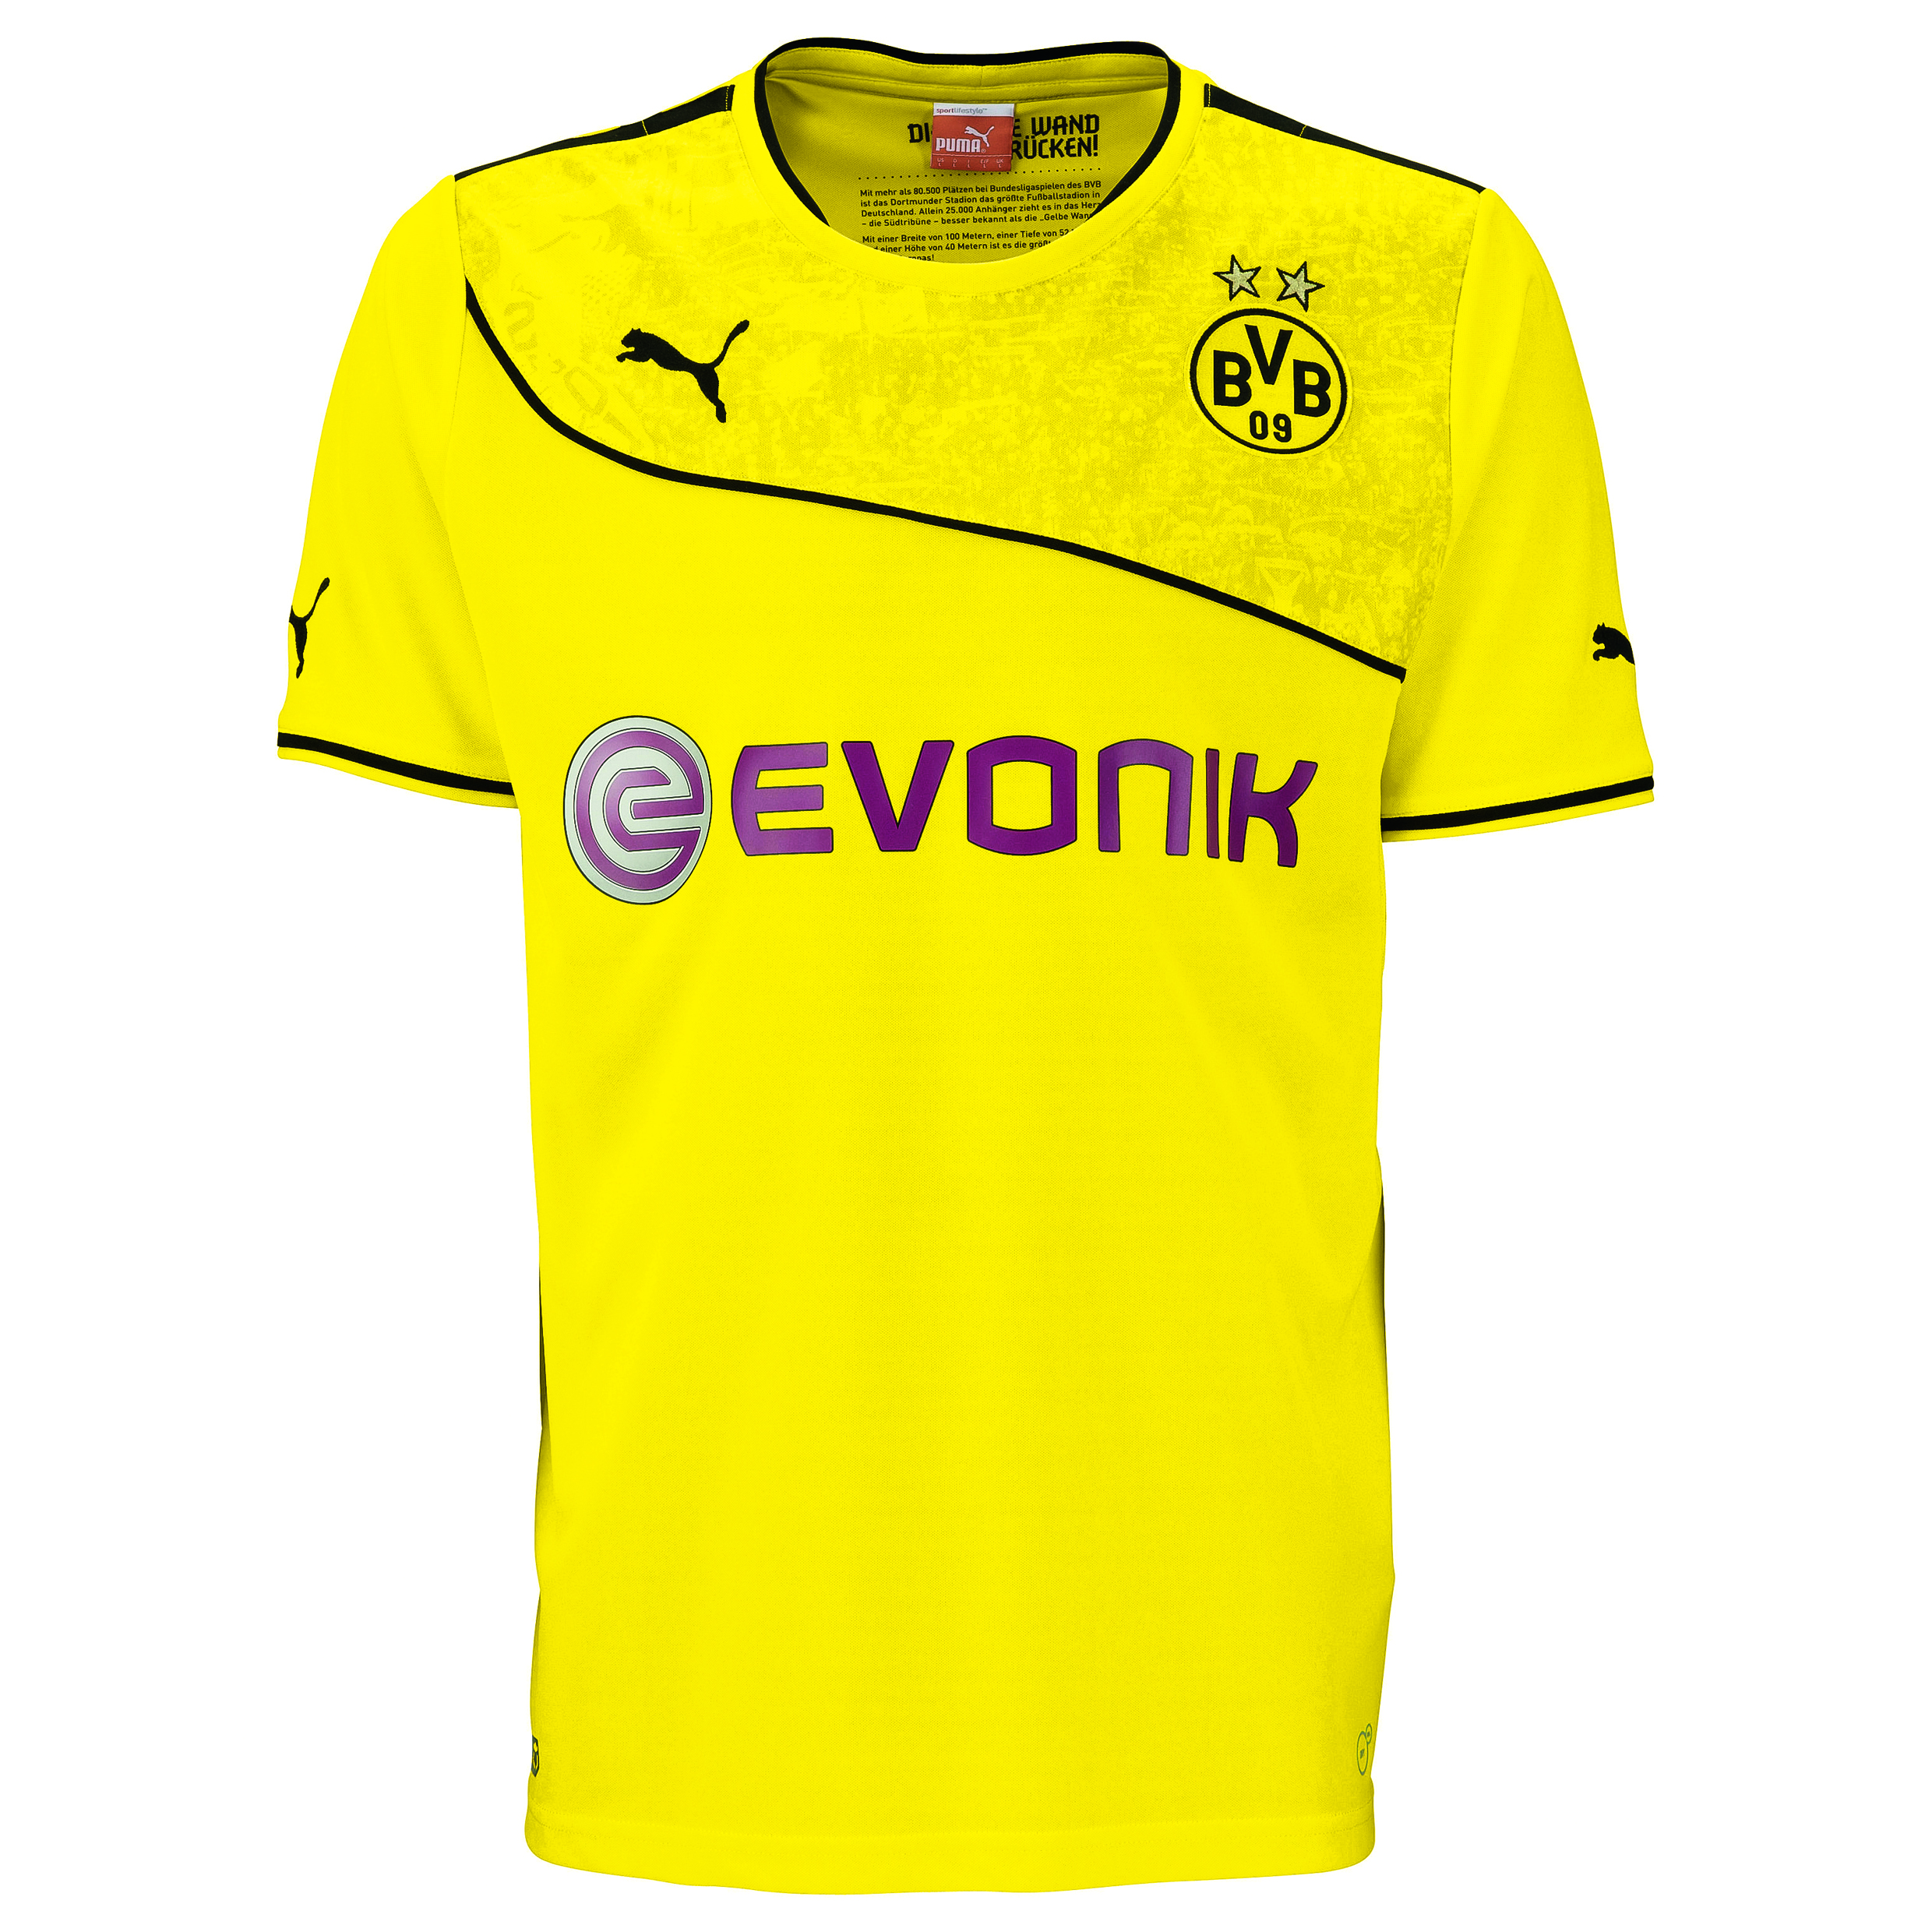 BVB Christmas Home Shirt 2013/14